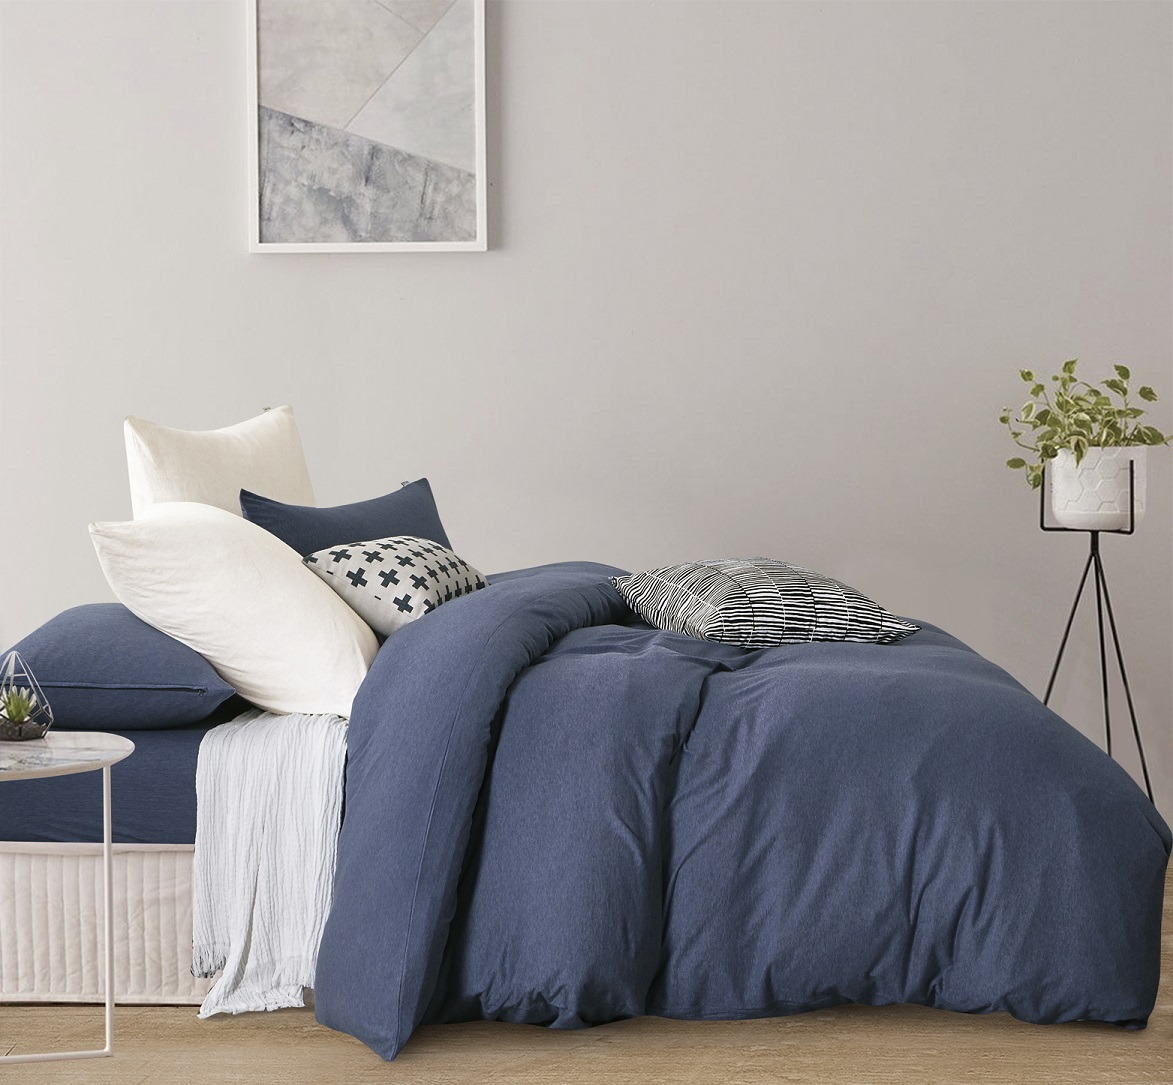 Gioia Casa Jersey Cotton Blue Marble Super King Bed Quilt Cover Set In 2 Linen